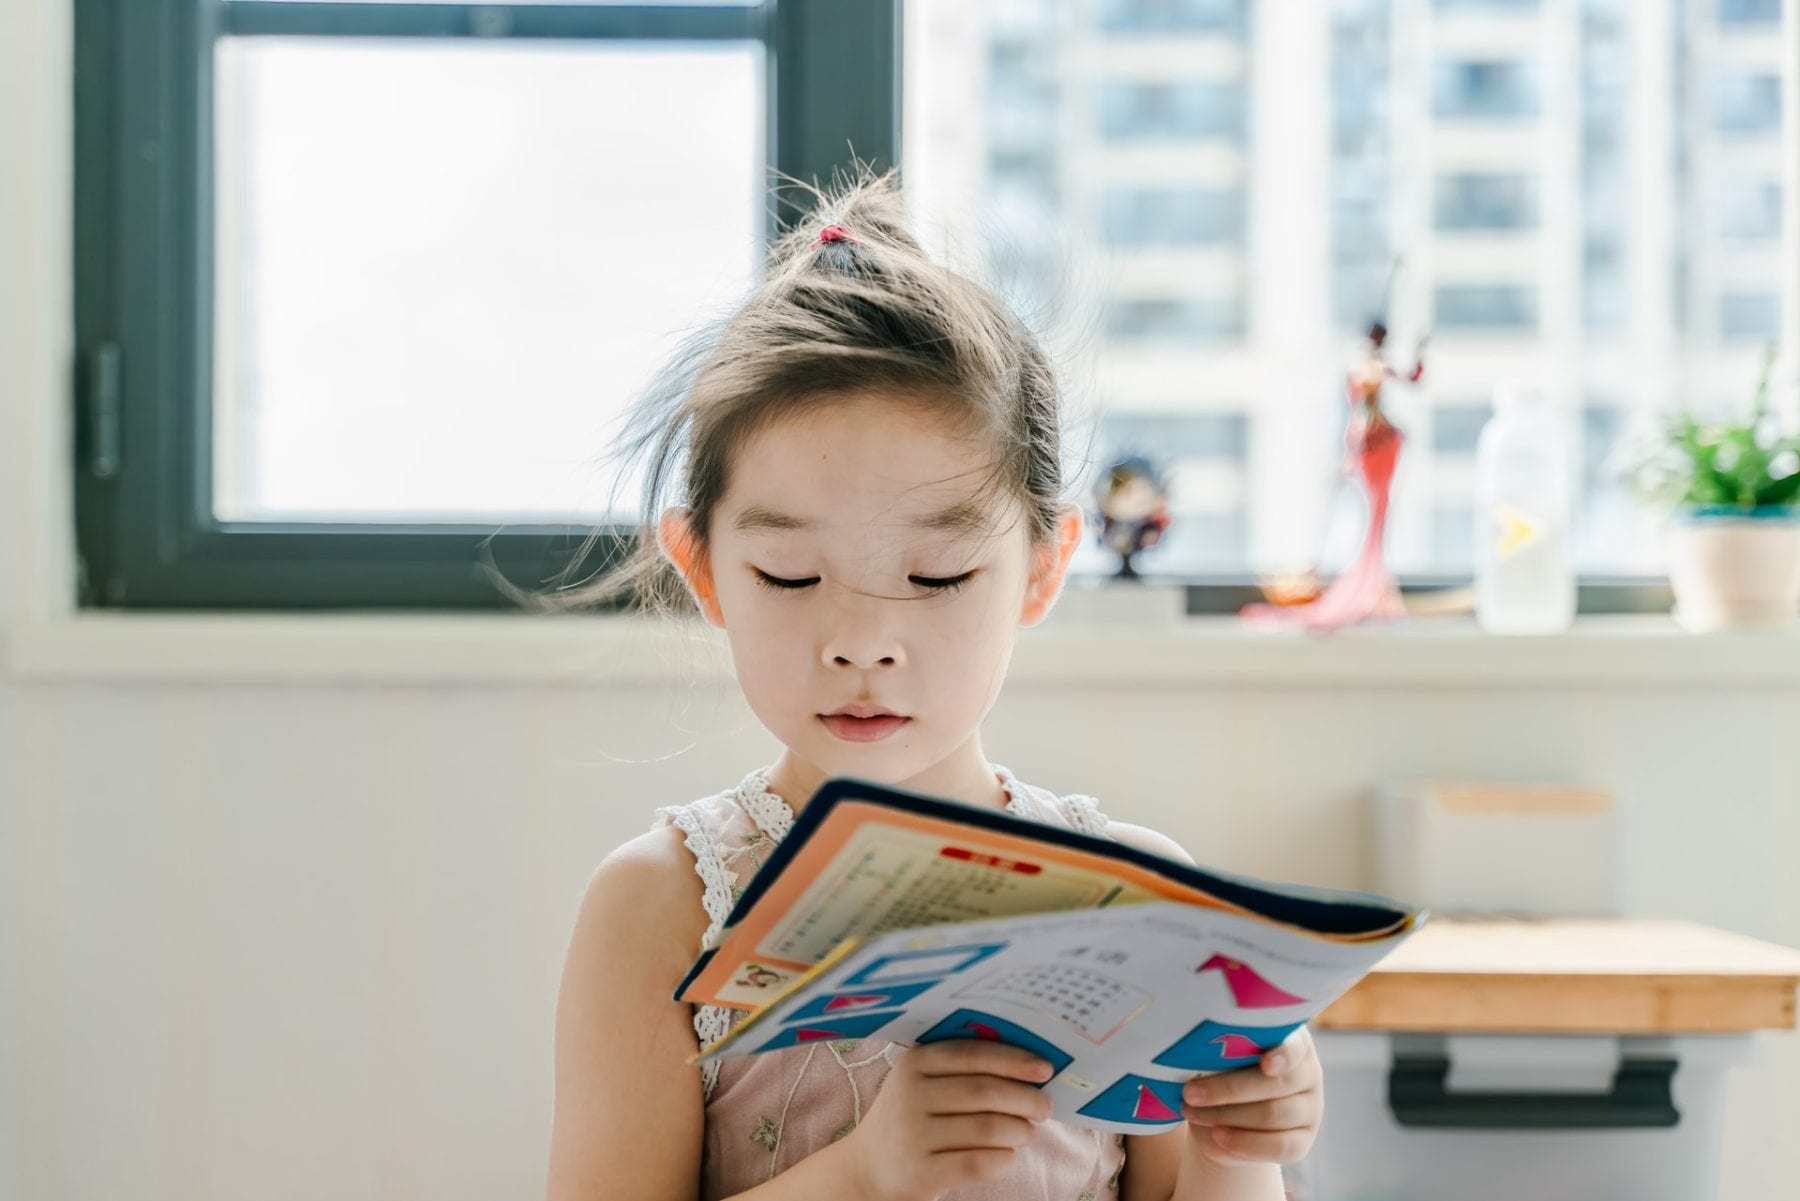 Resources for parents, children, and teachers to help support at-home learning